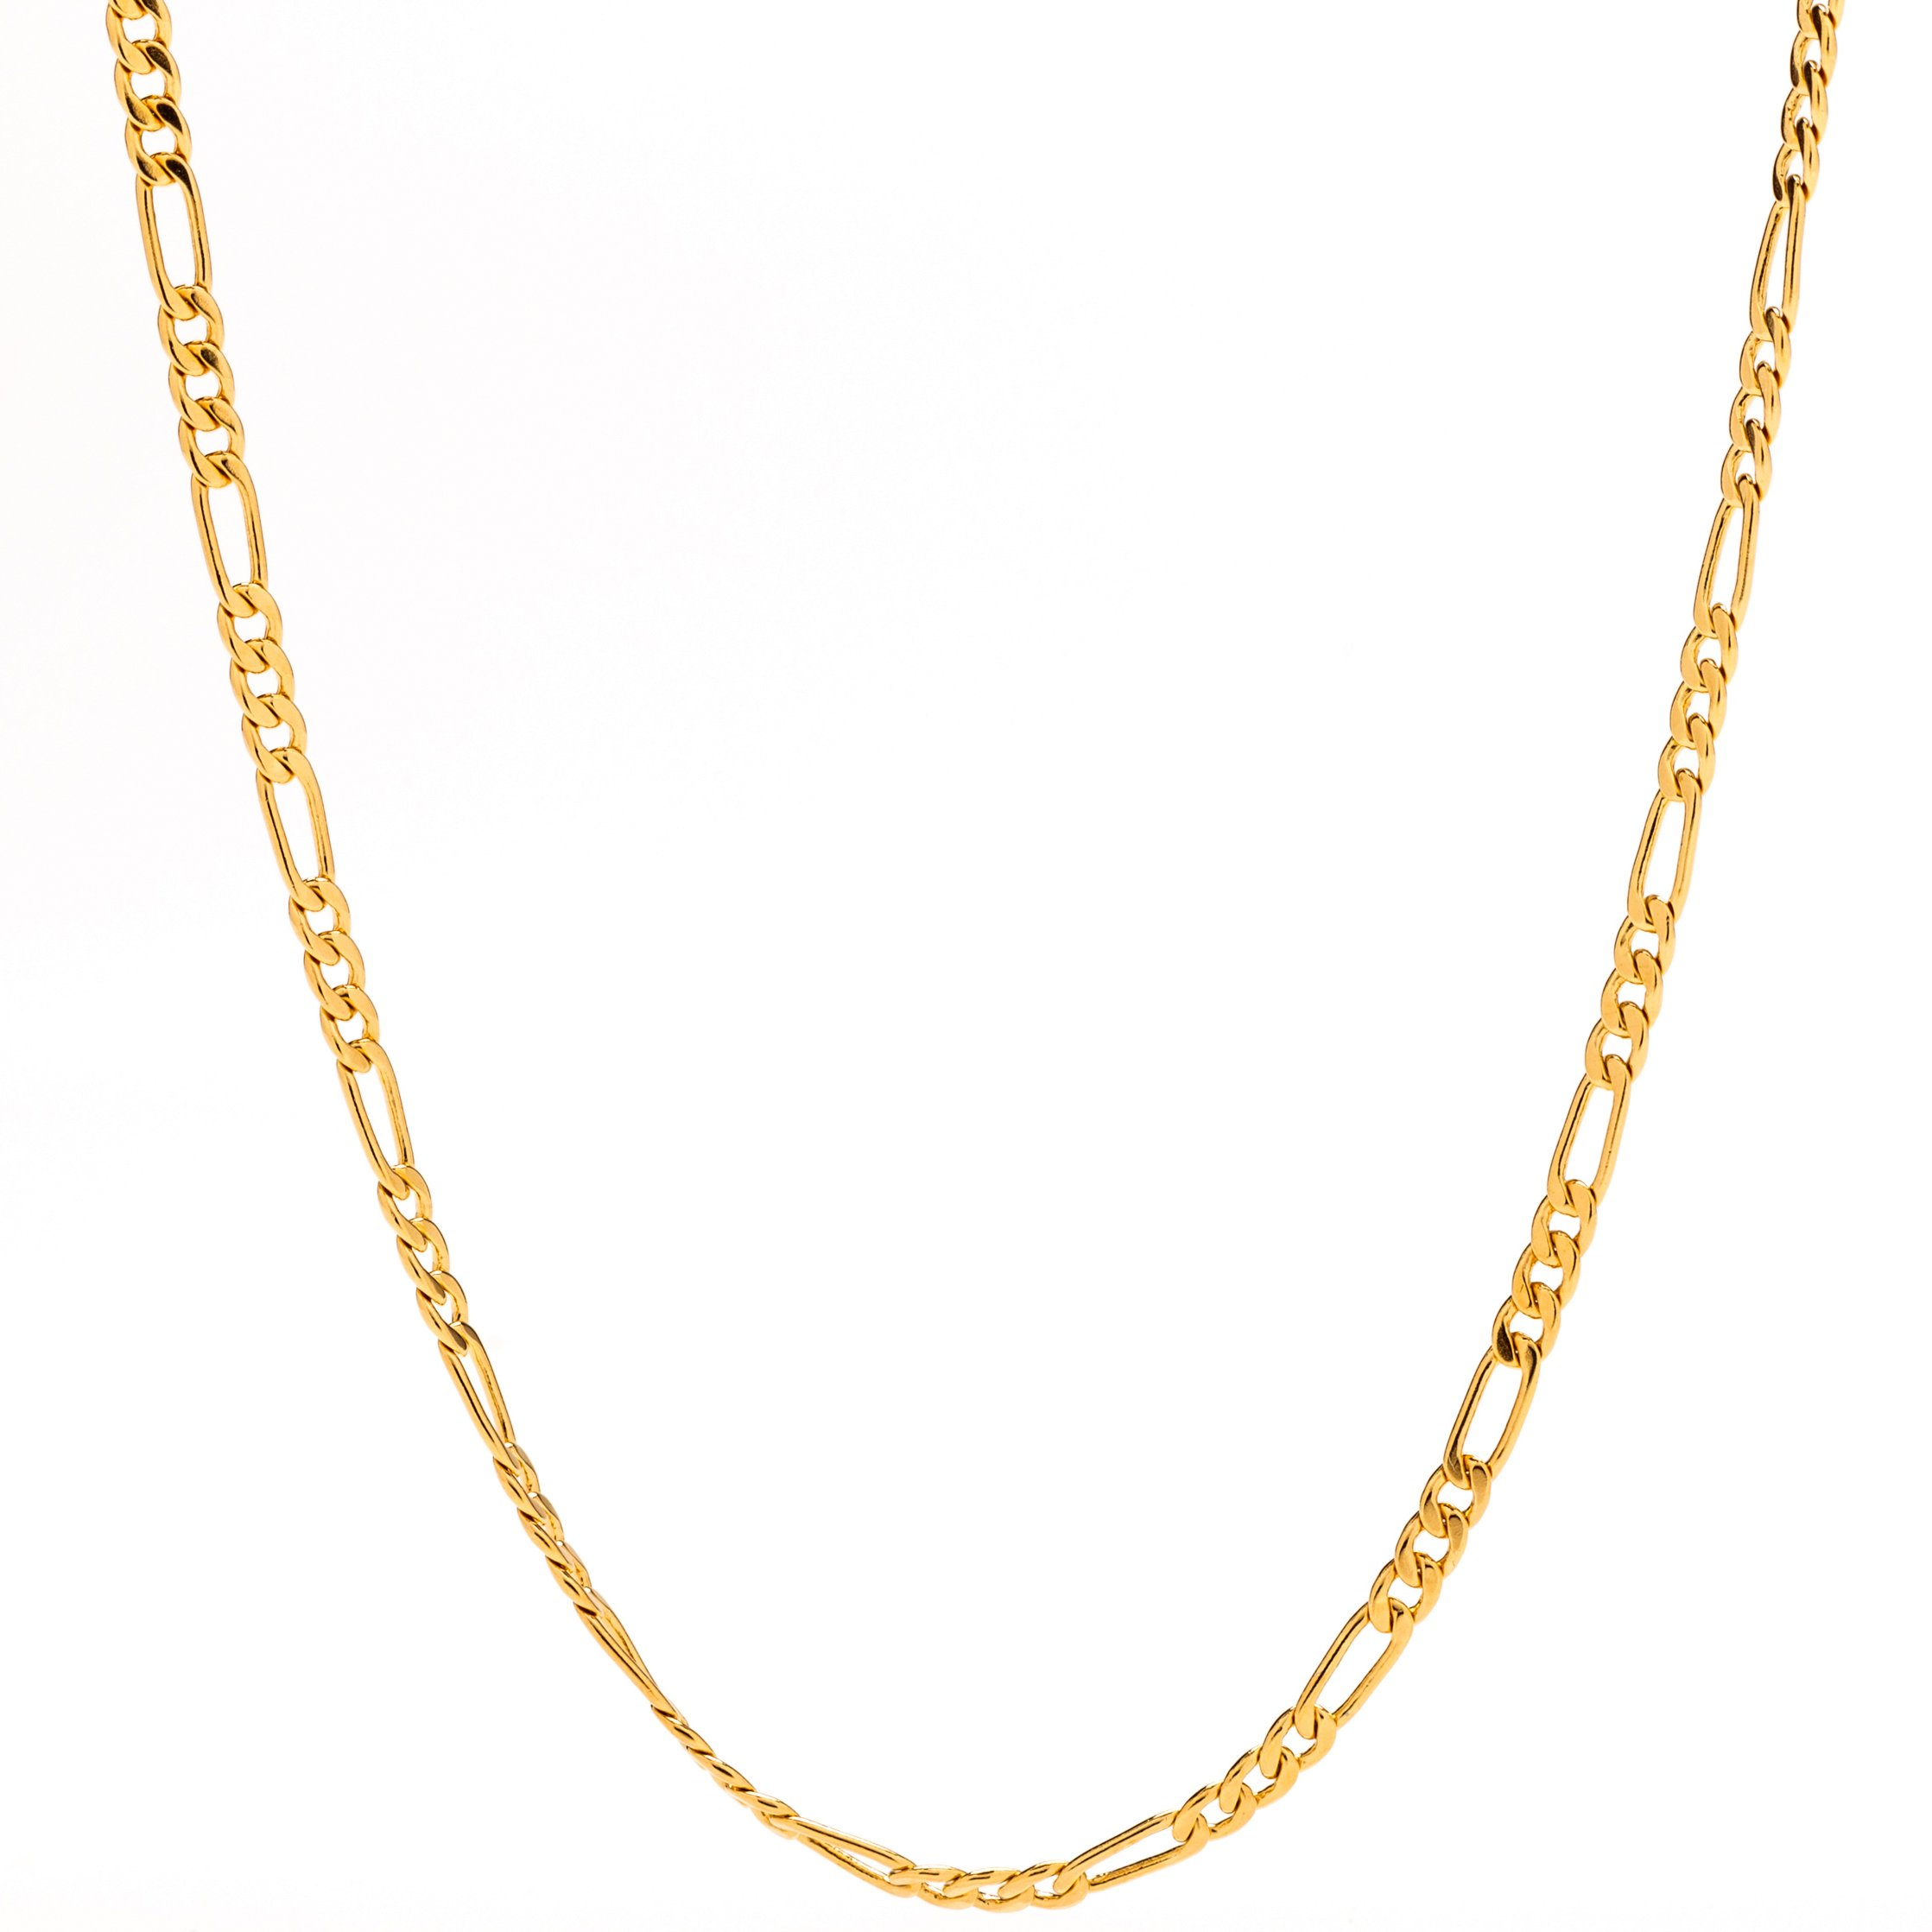 Lifetime Jewelry Figaro Chain 2.5MM, 24K Gold with Inlaid Bronze, Pendant Necklace, Guaranteed for Life, 16 to 30 Inches (24) by Lifetime Jewelry